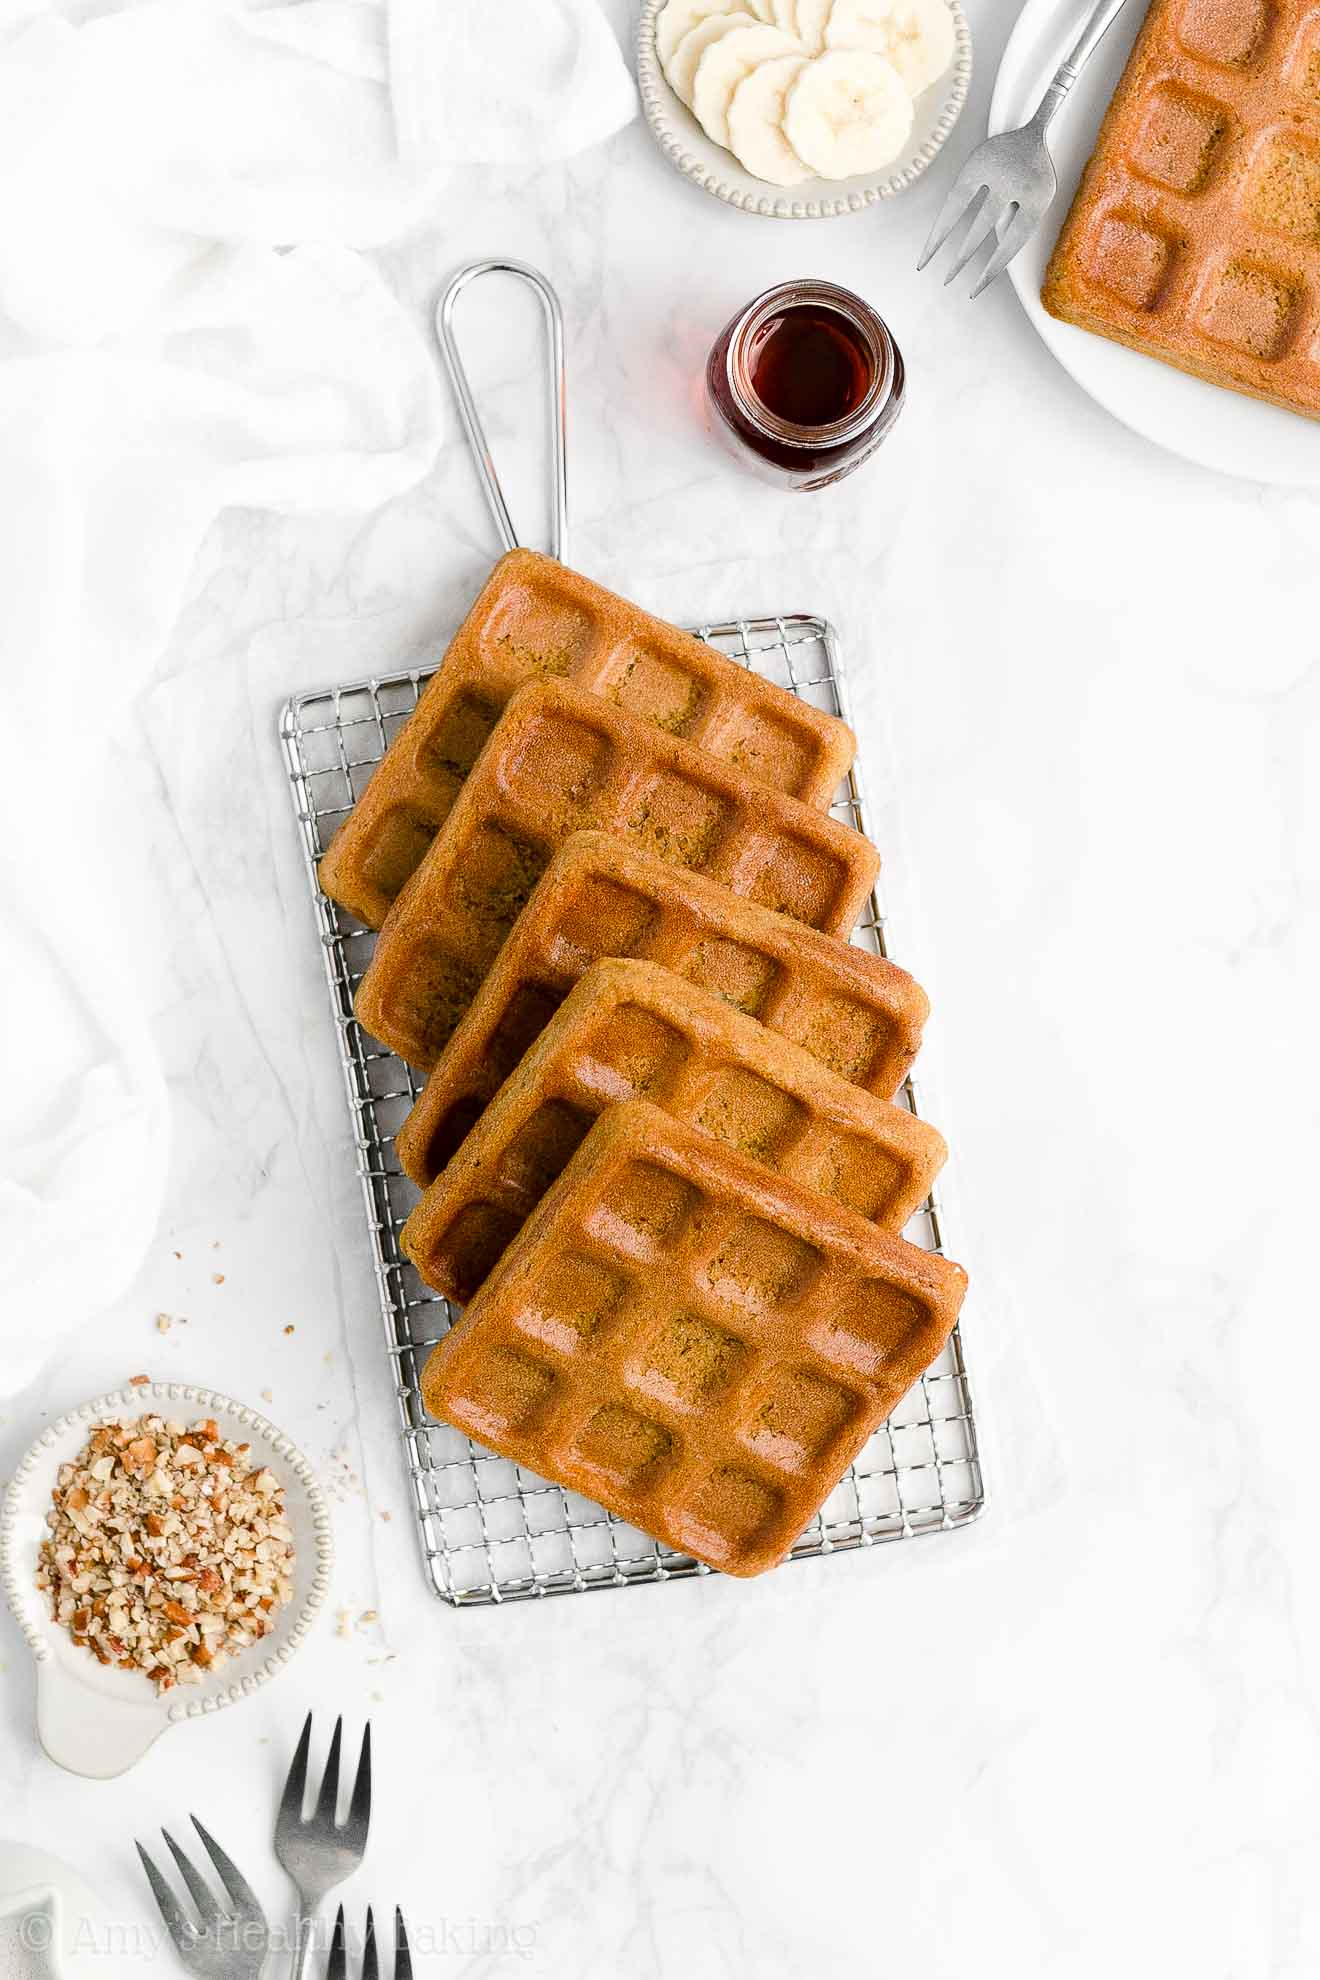 Best Easy Healthy Clean Eating Low Sugar Low Fat Baked Crispy Banana Waffles